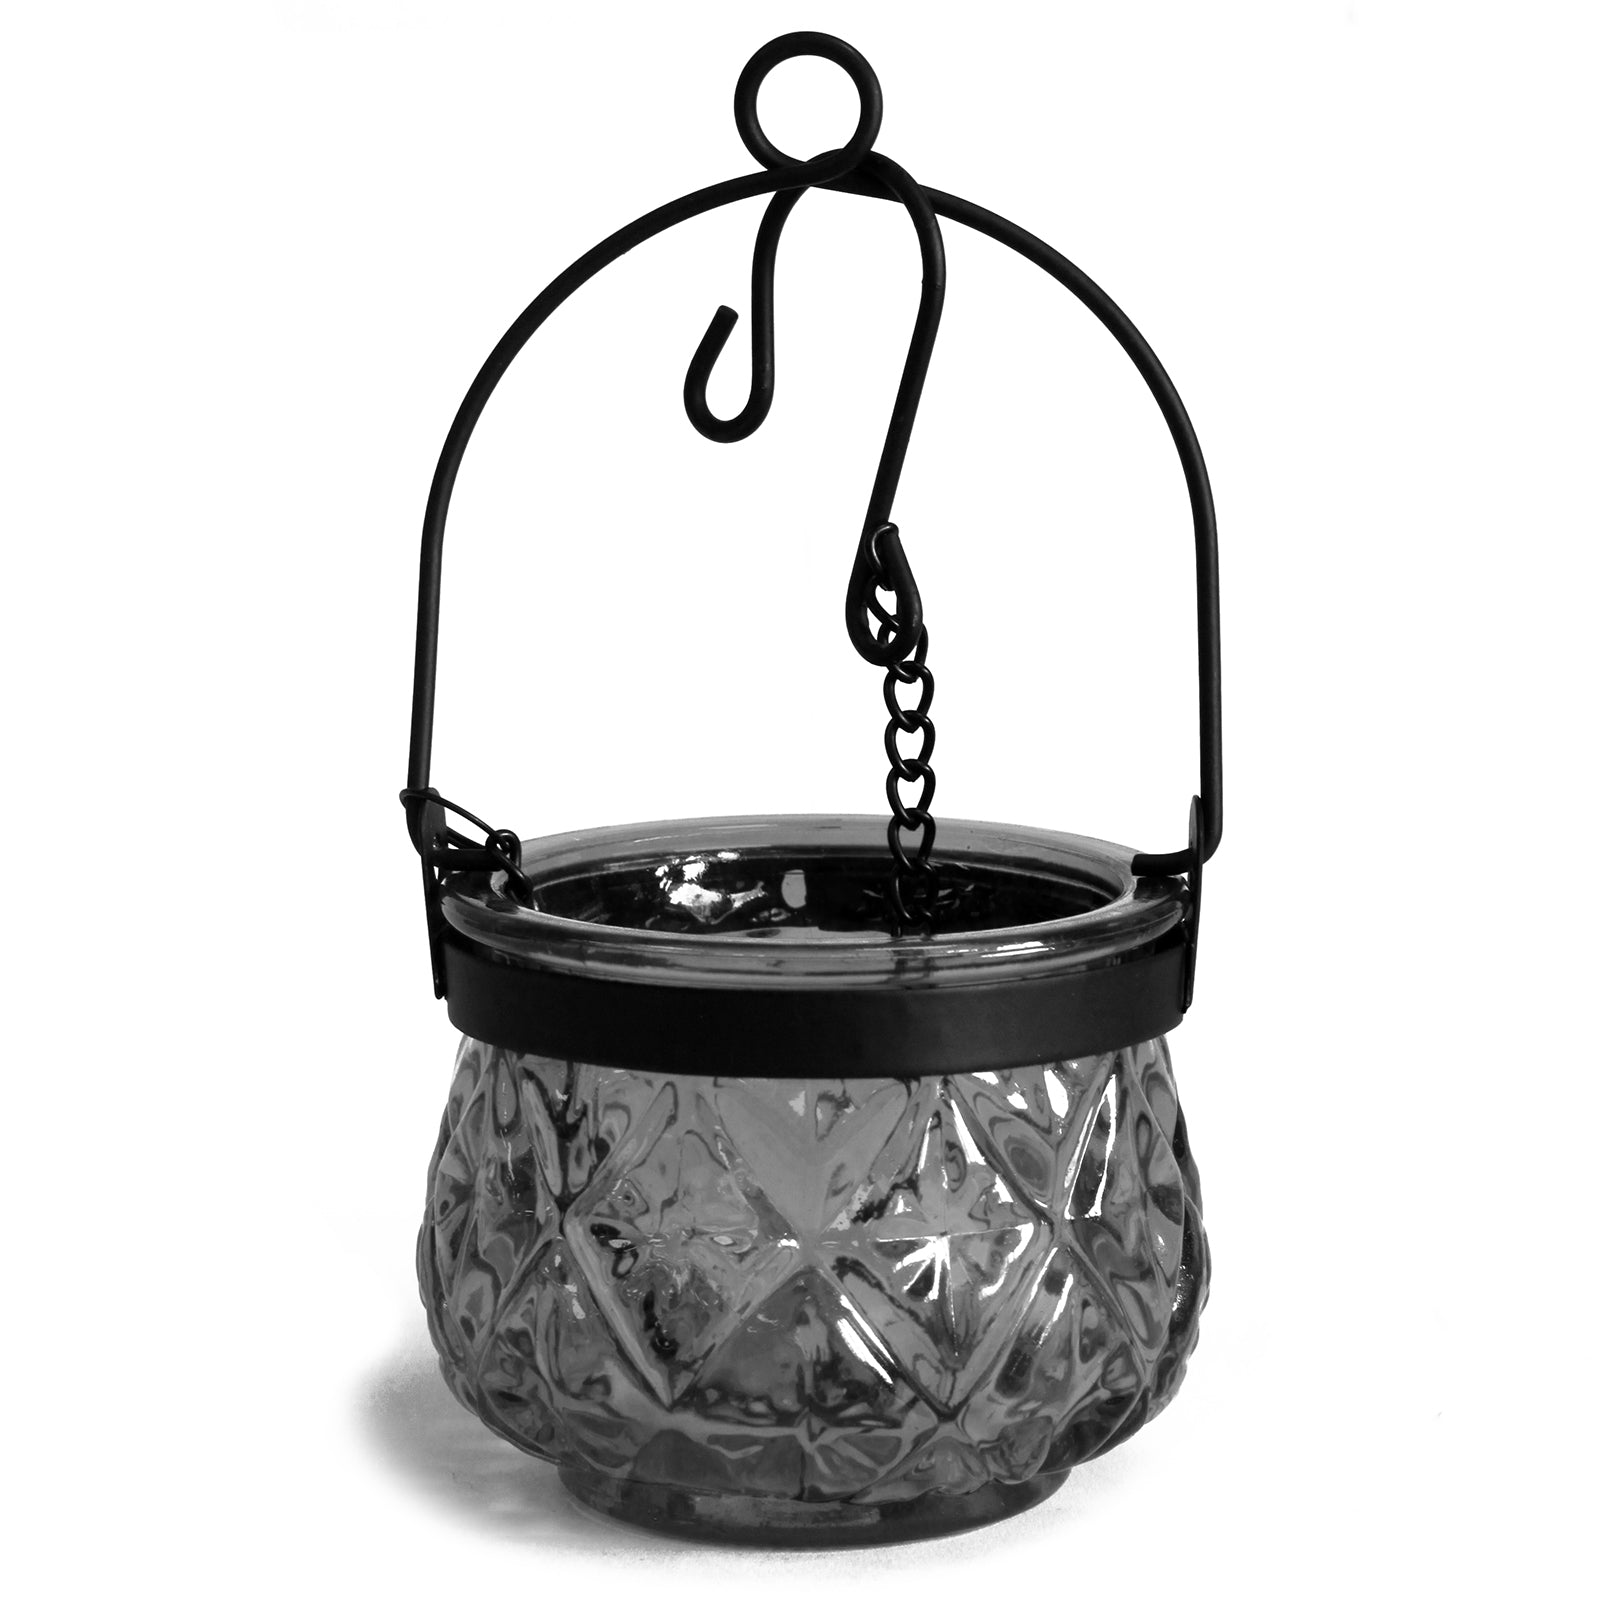 Moroccan Style Hanging Candle Lantern - Grey